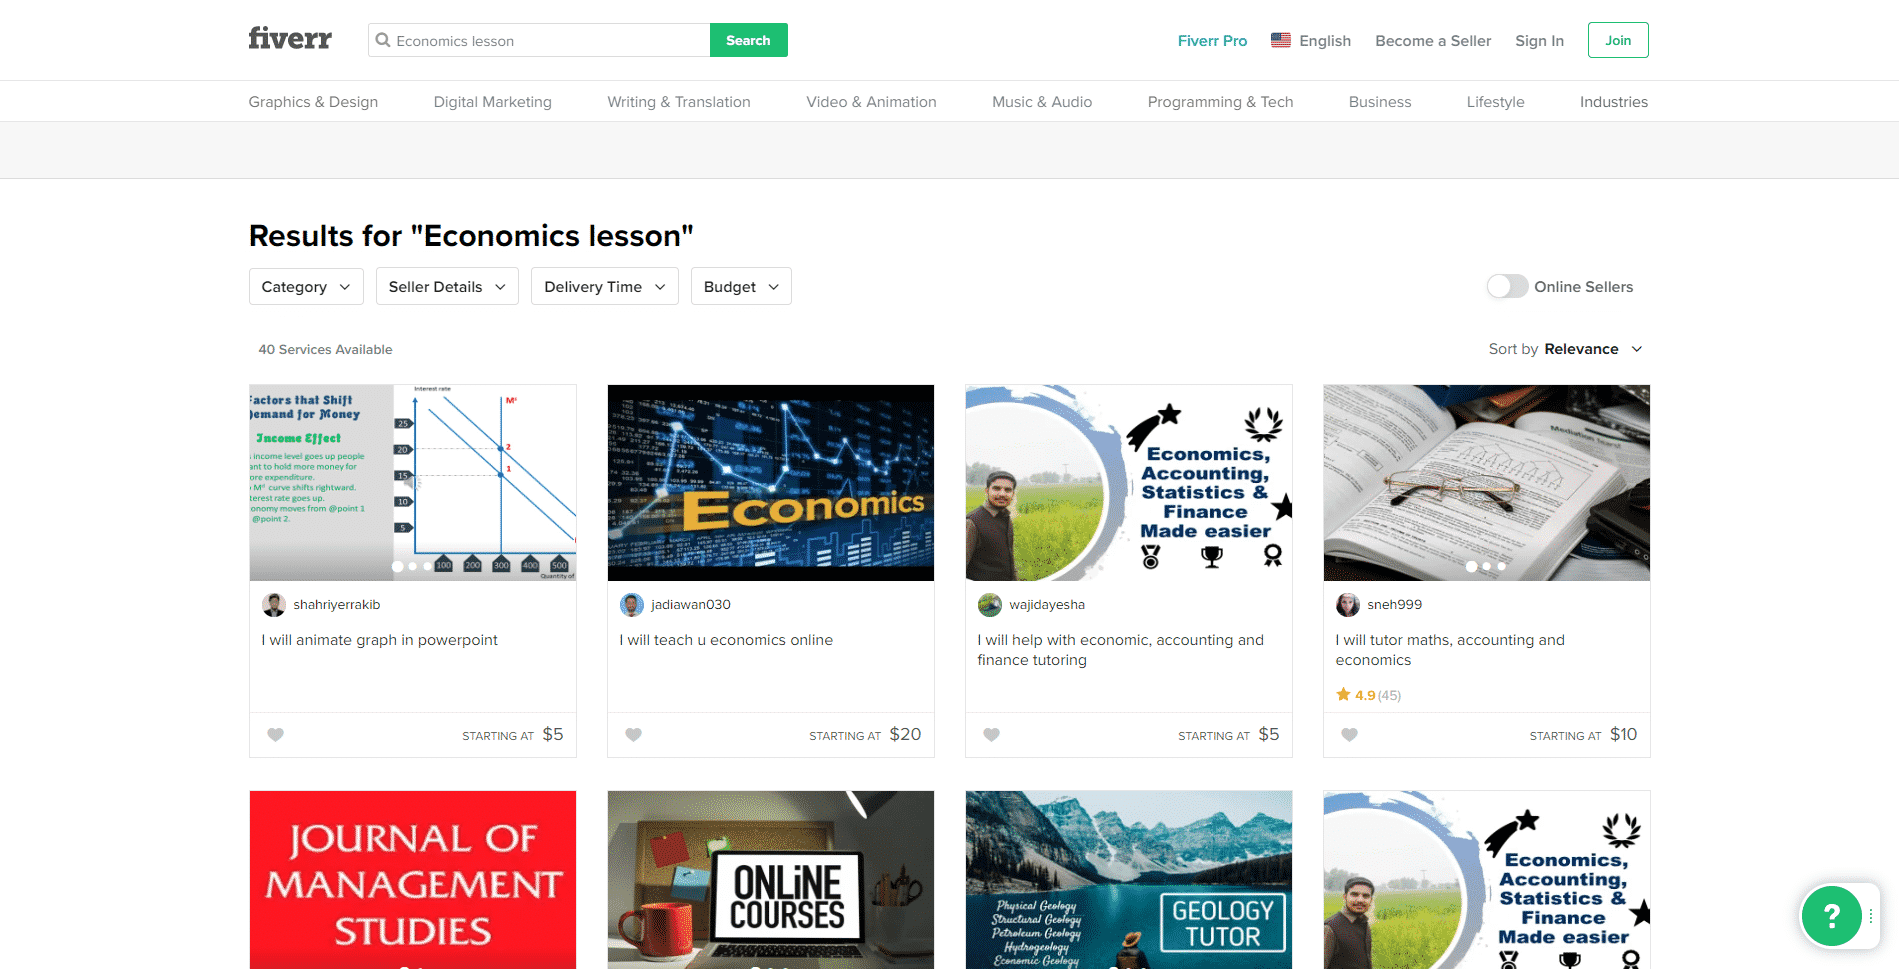 Fiverr Learn Economic Lessons Online